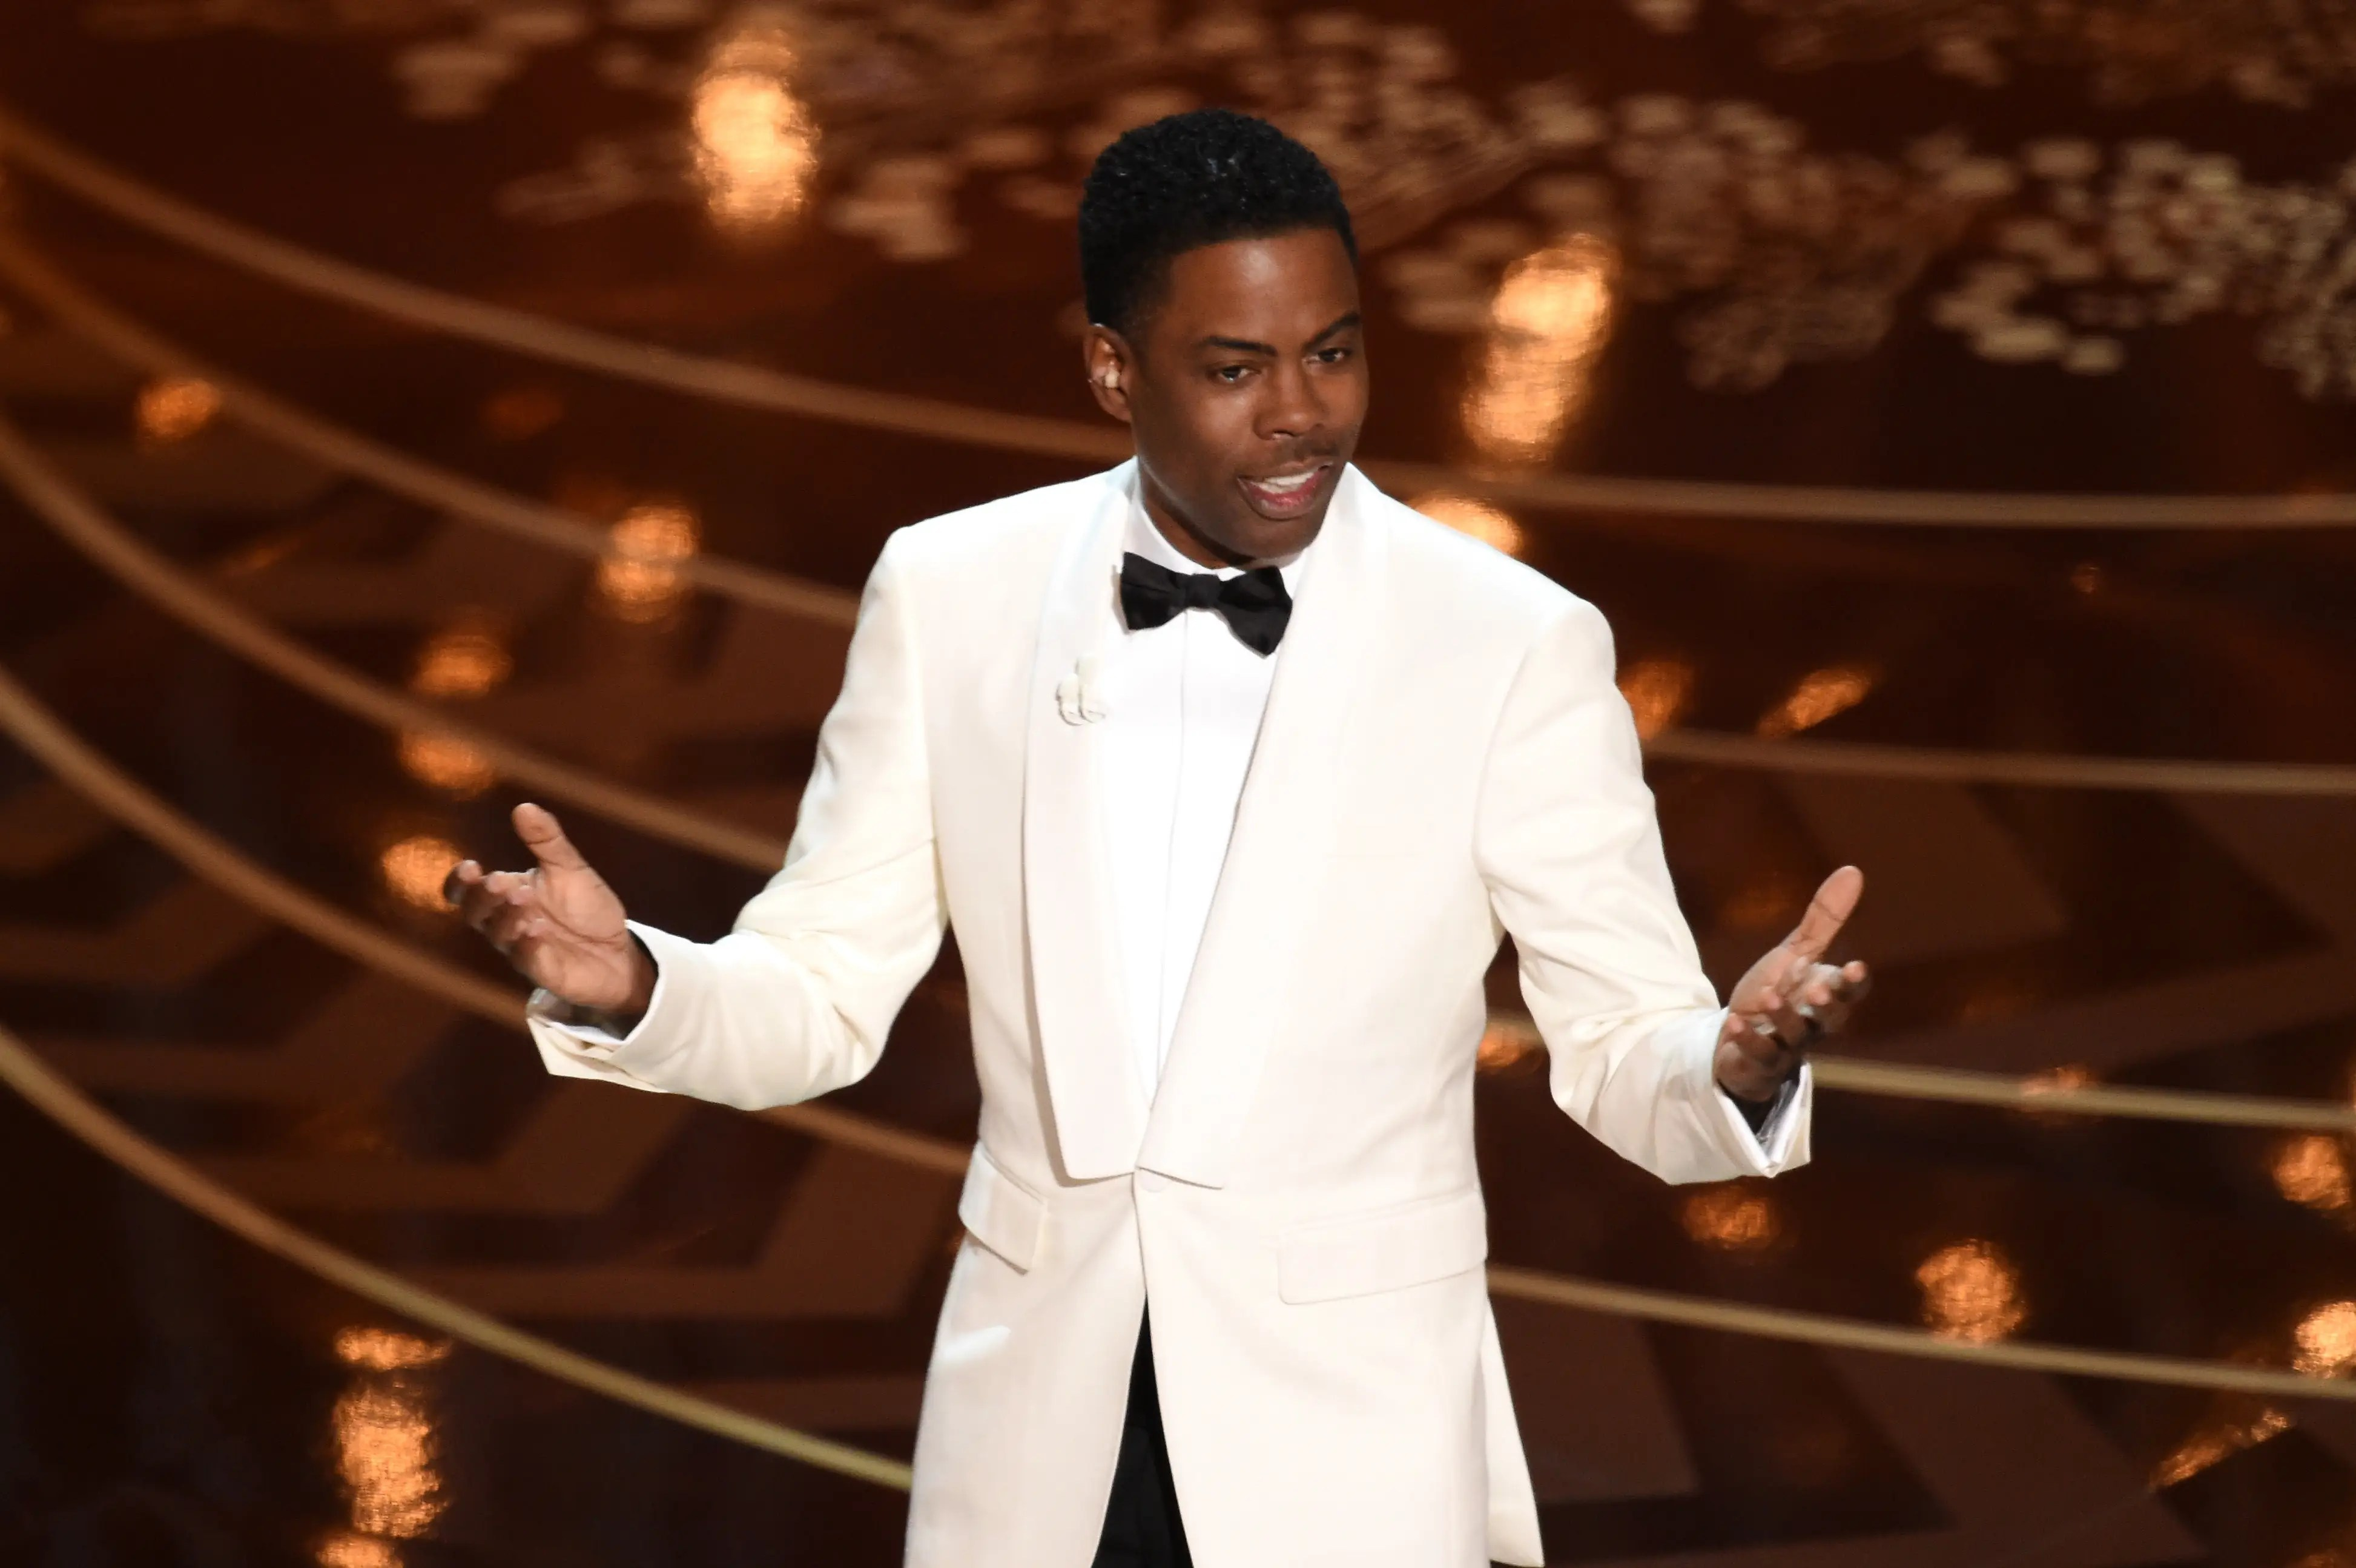 BEST: Chris Rock's opening monologue was funny, poignant, and the best part — no one was safe.